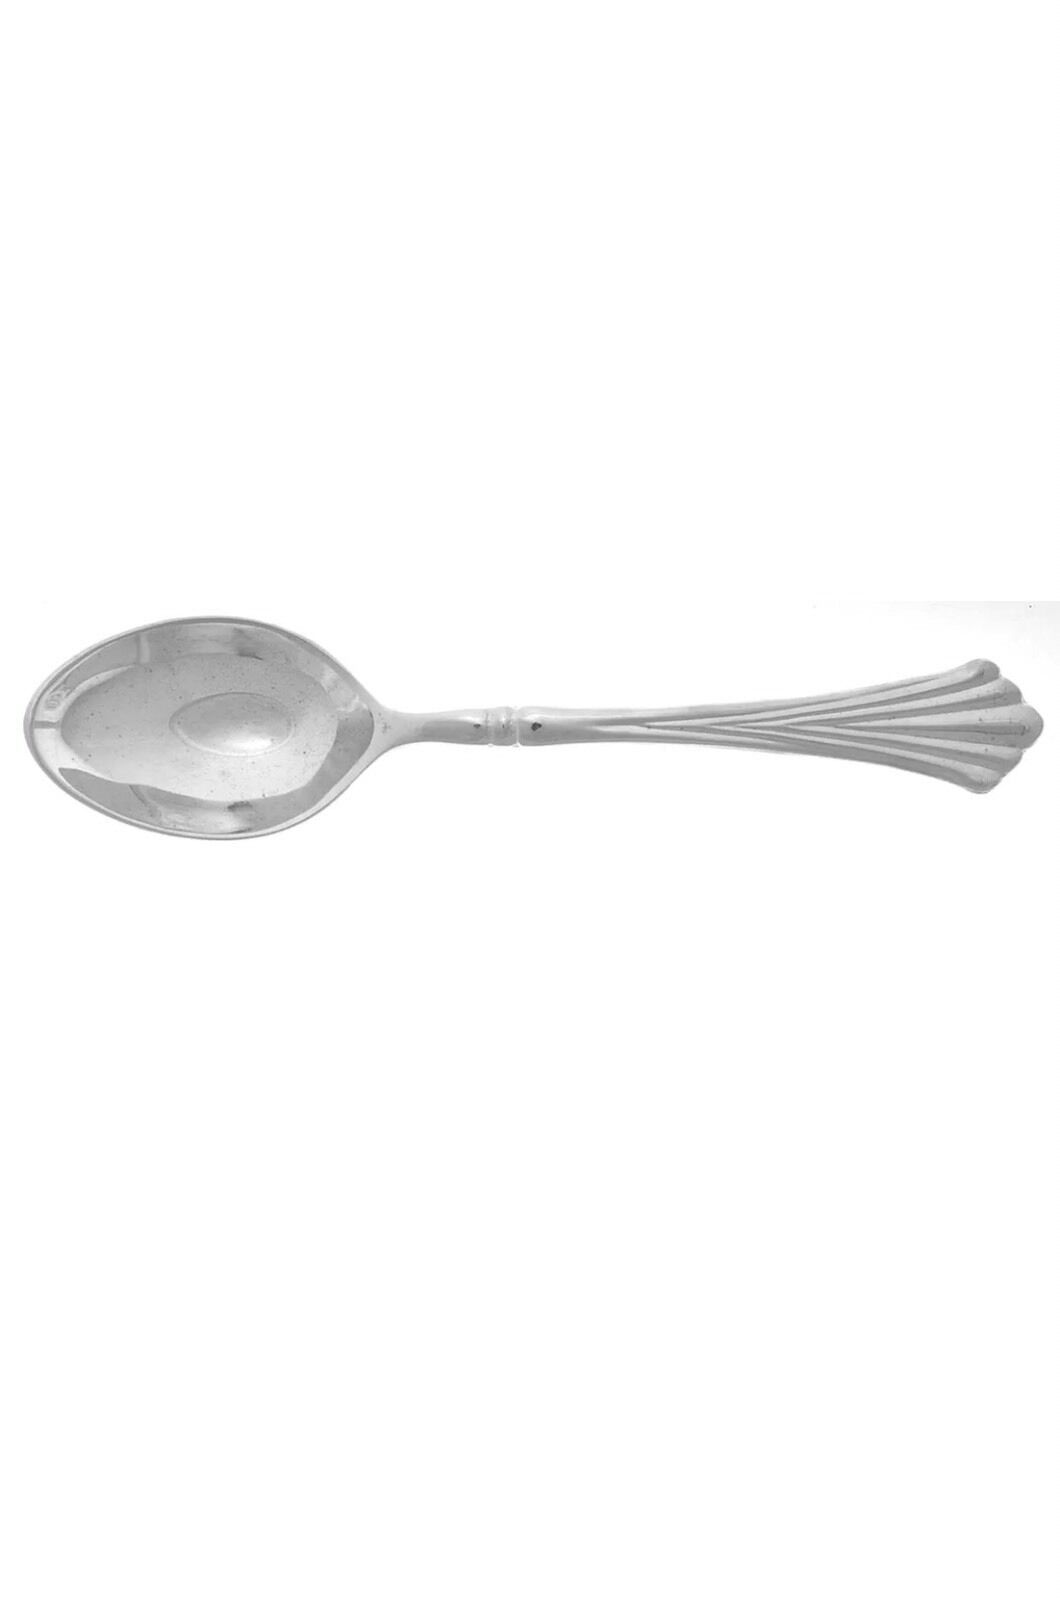 Primary image for NEW 6 International ROYAL PLUME SILVERPLATE Oval Soup Spoons 3457665 Rogers Son